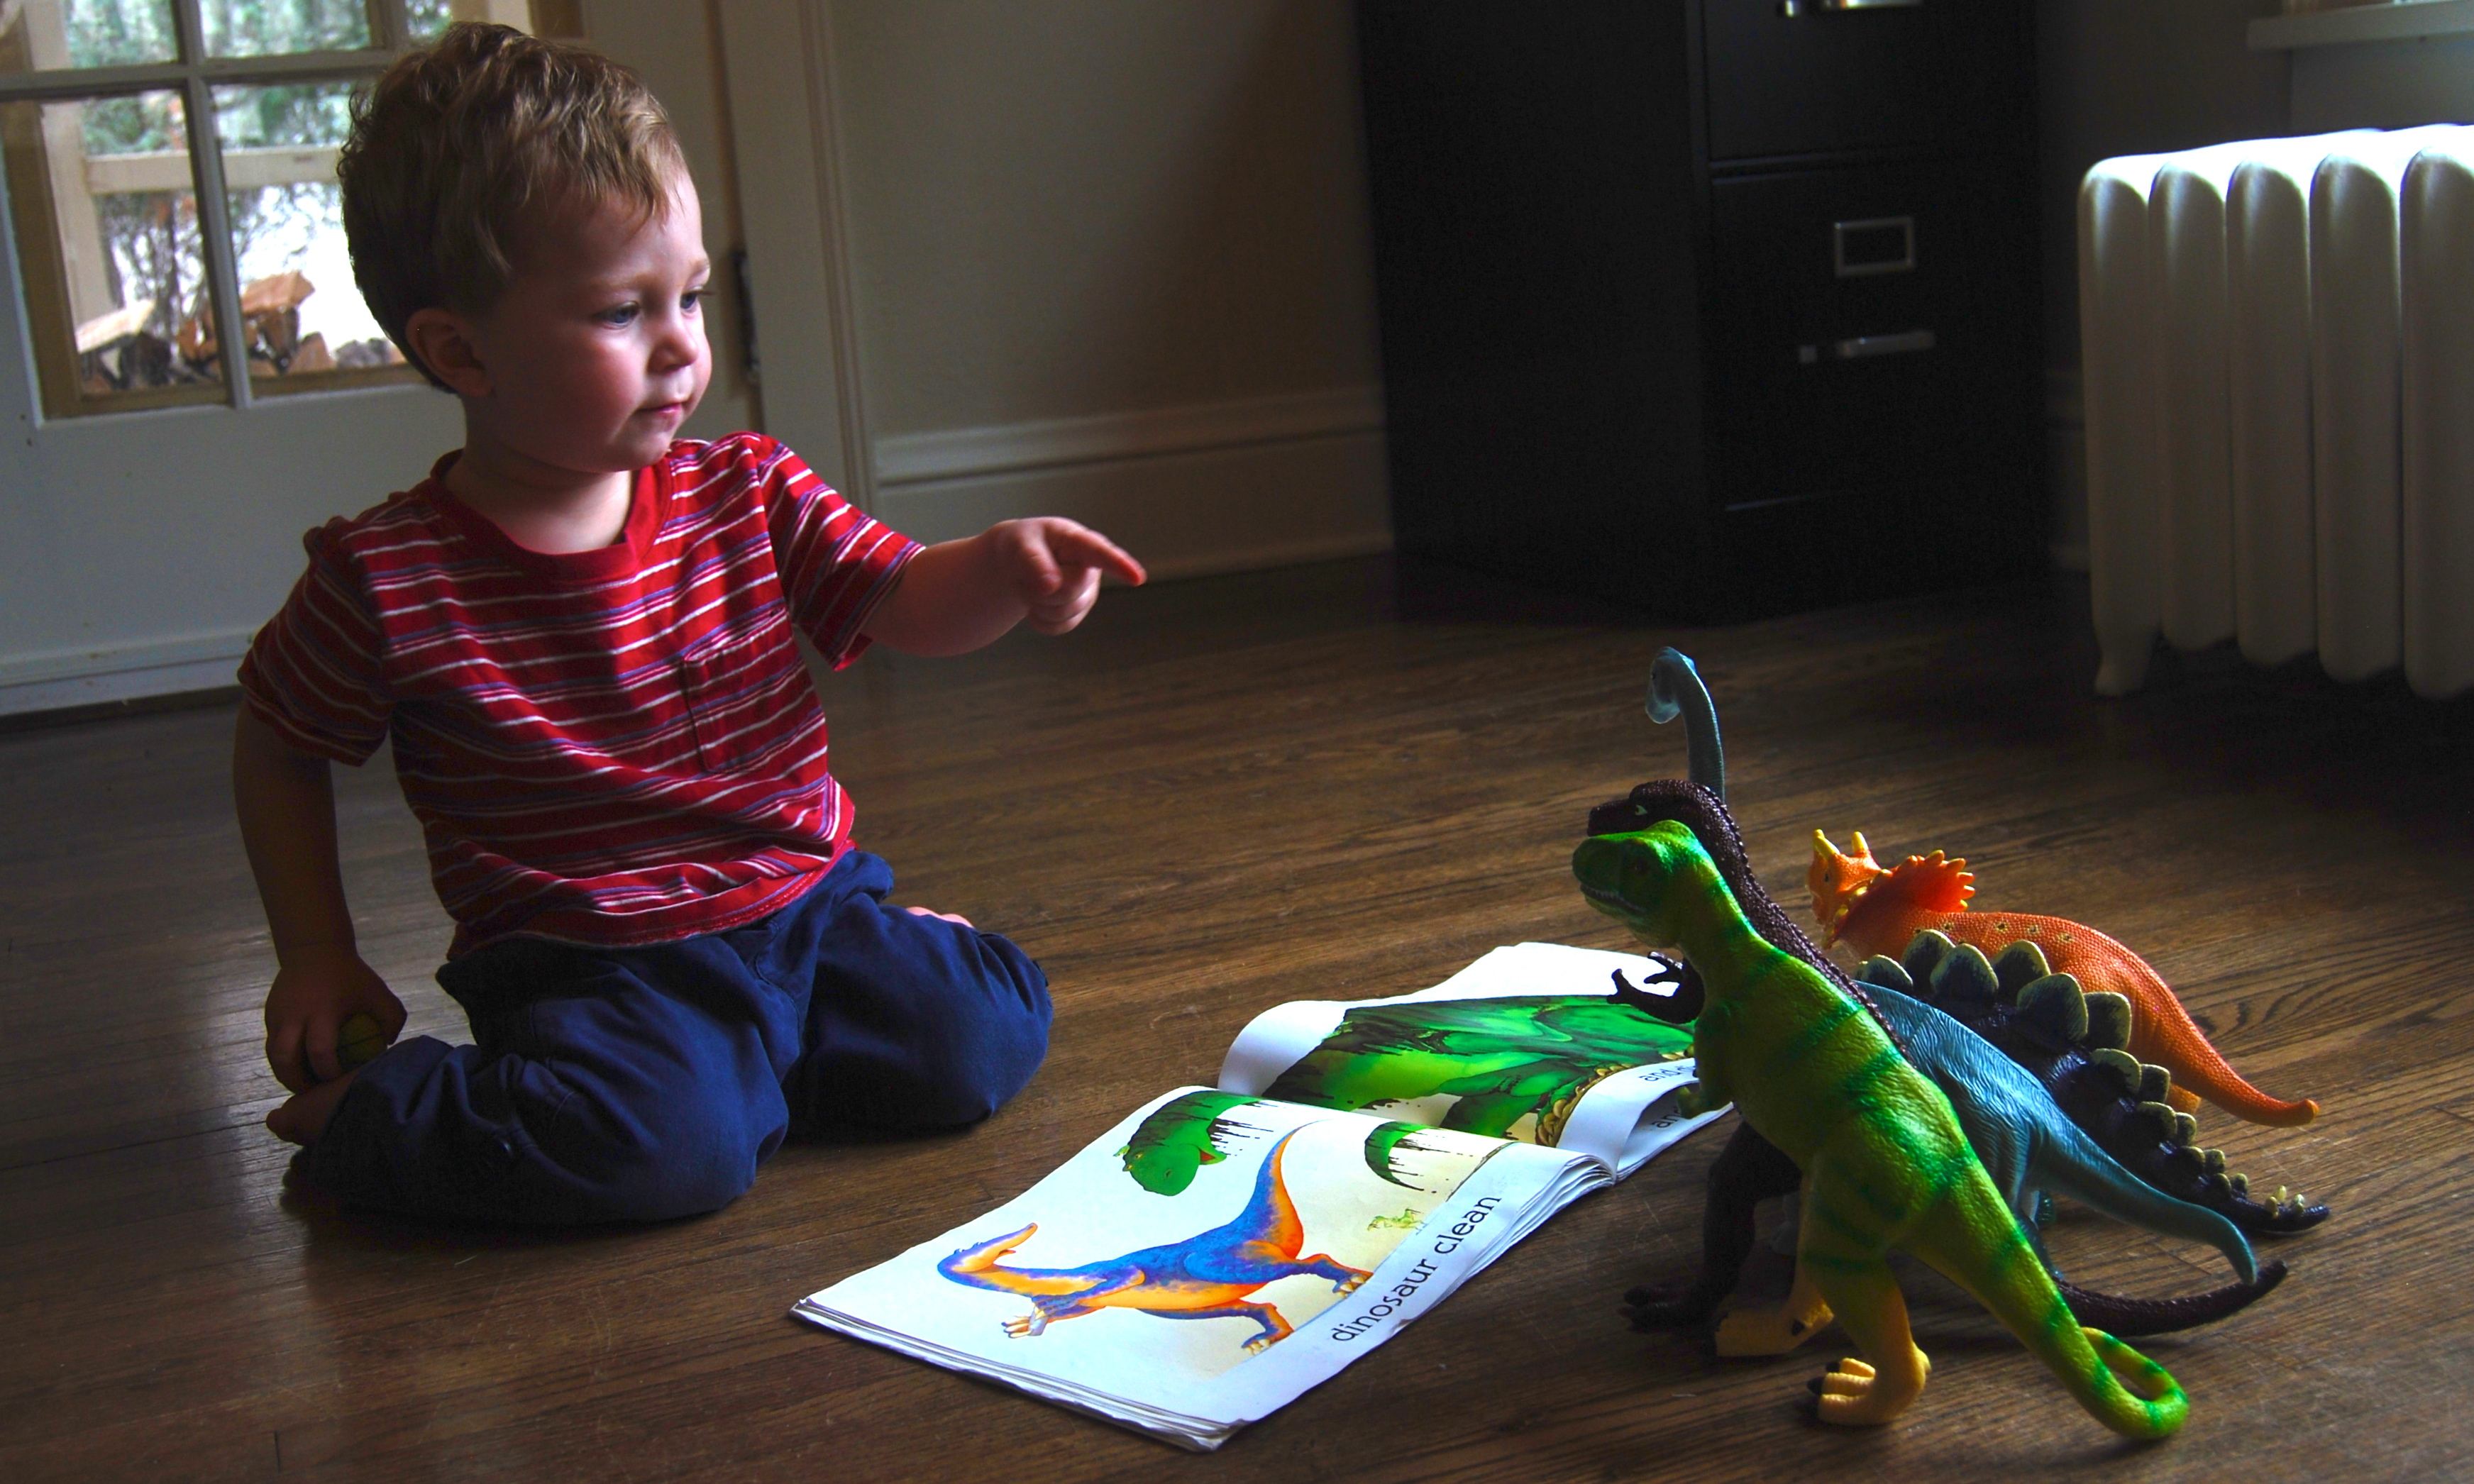 Shark Toys For Boys And Dinosaurs : Children s books about dinosaurs delightful